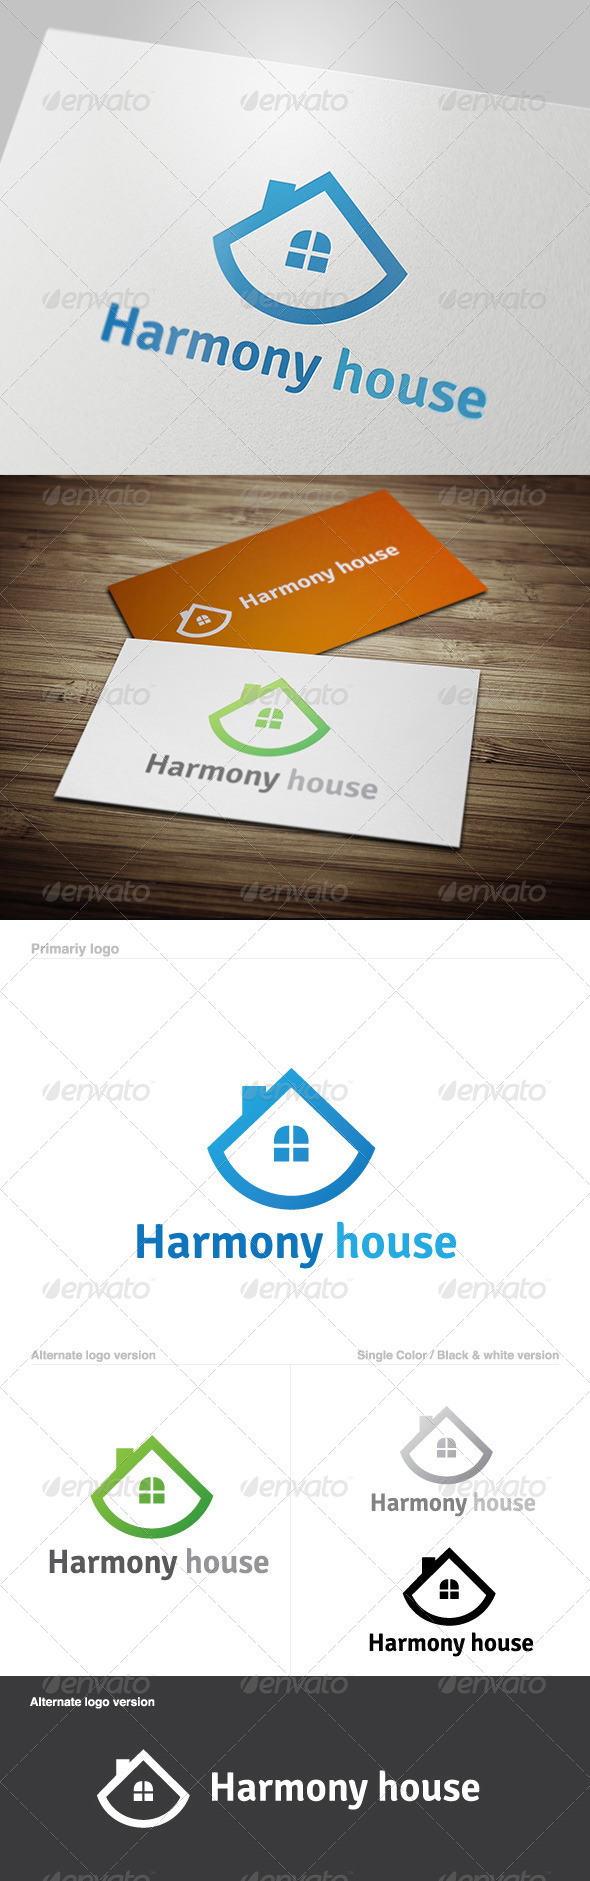 GraphicRiver Harmony House Logo 5629702